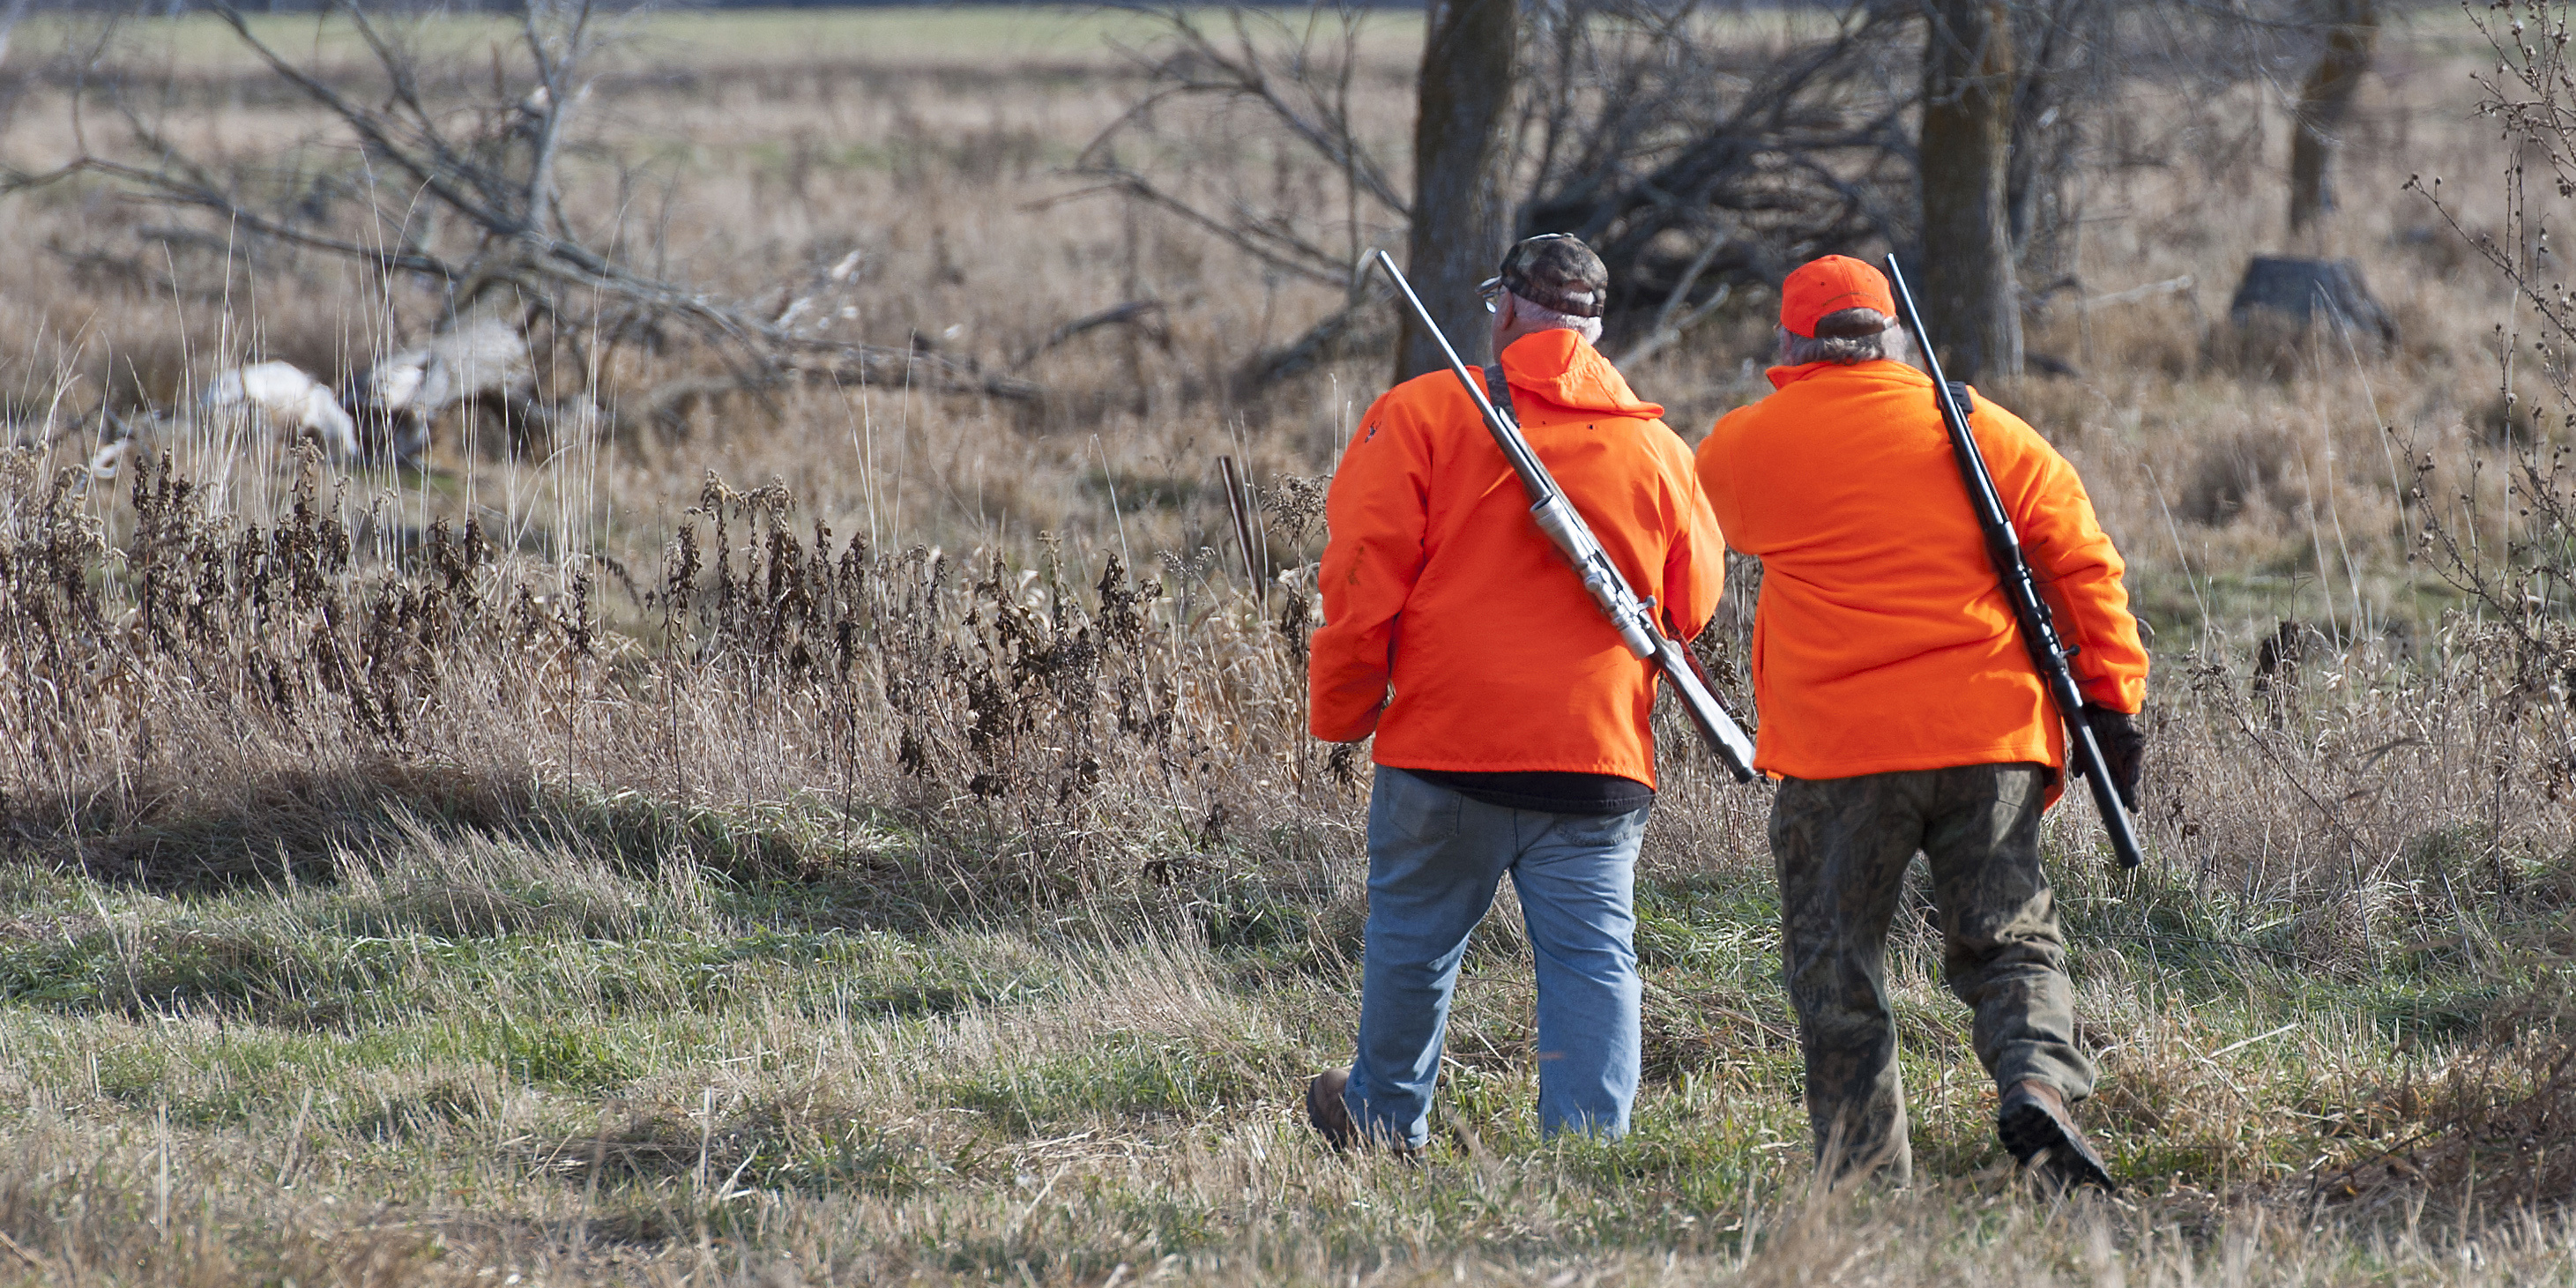 Hunters dressed in blaze orange walking in November.